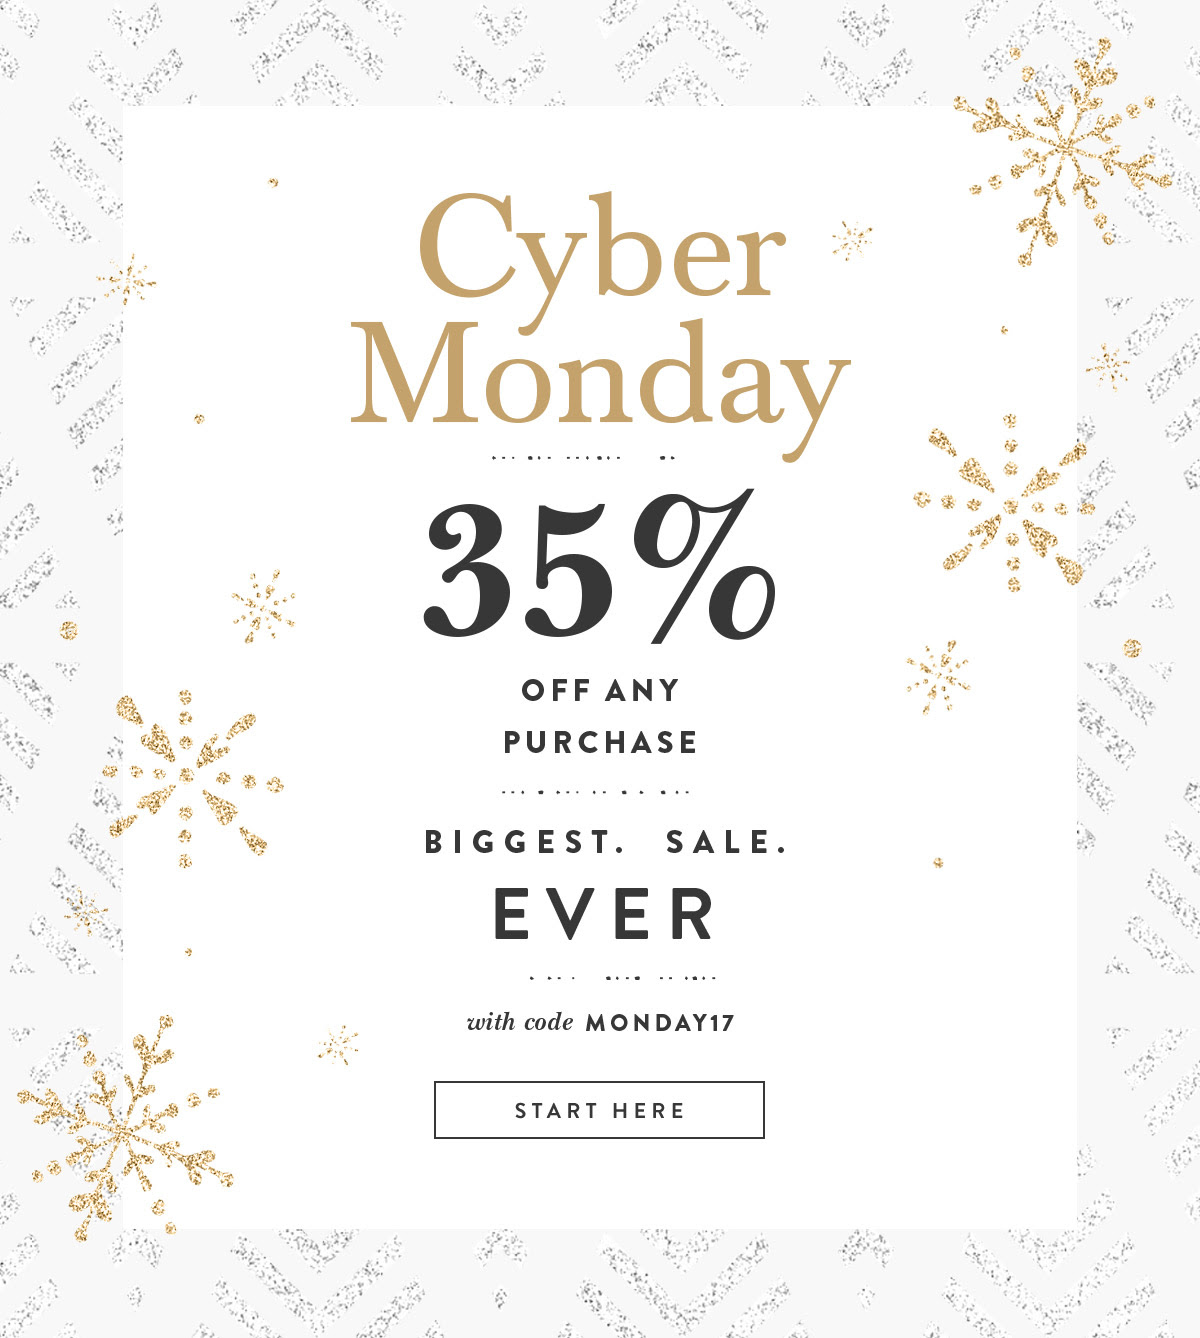 Cyber Monday Sale Launch Sitewide Sale